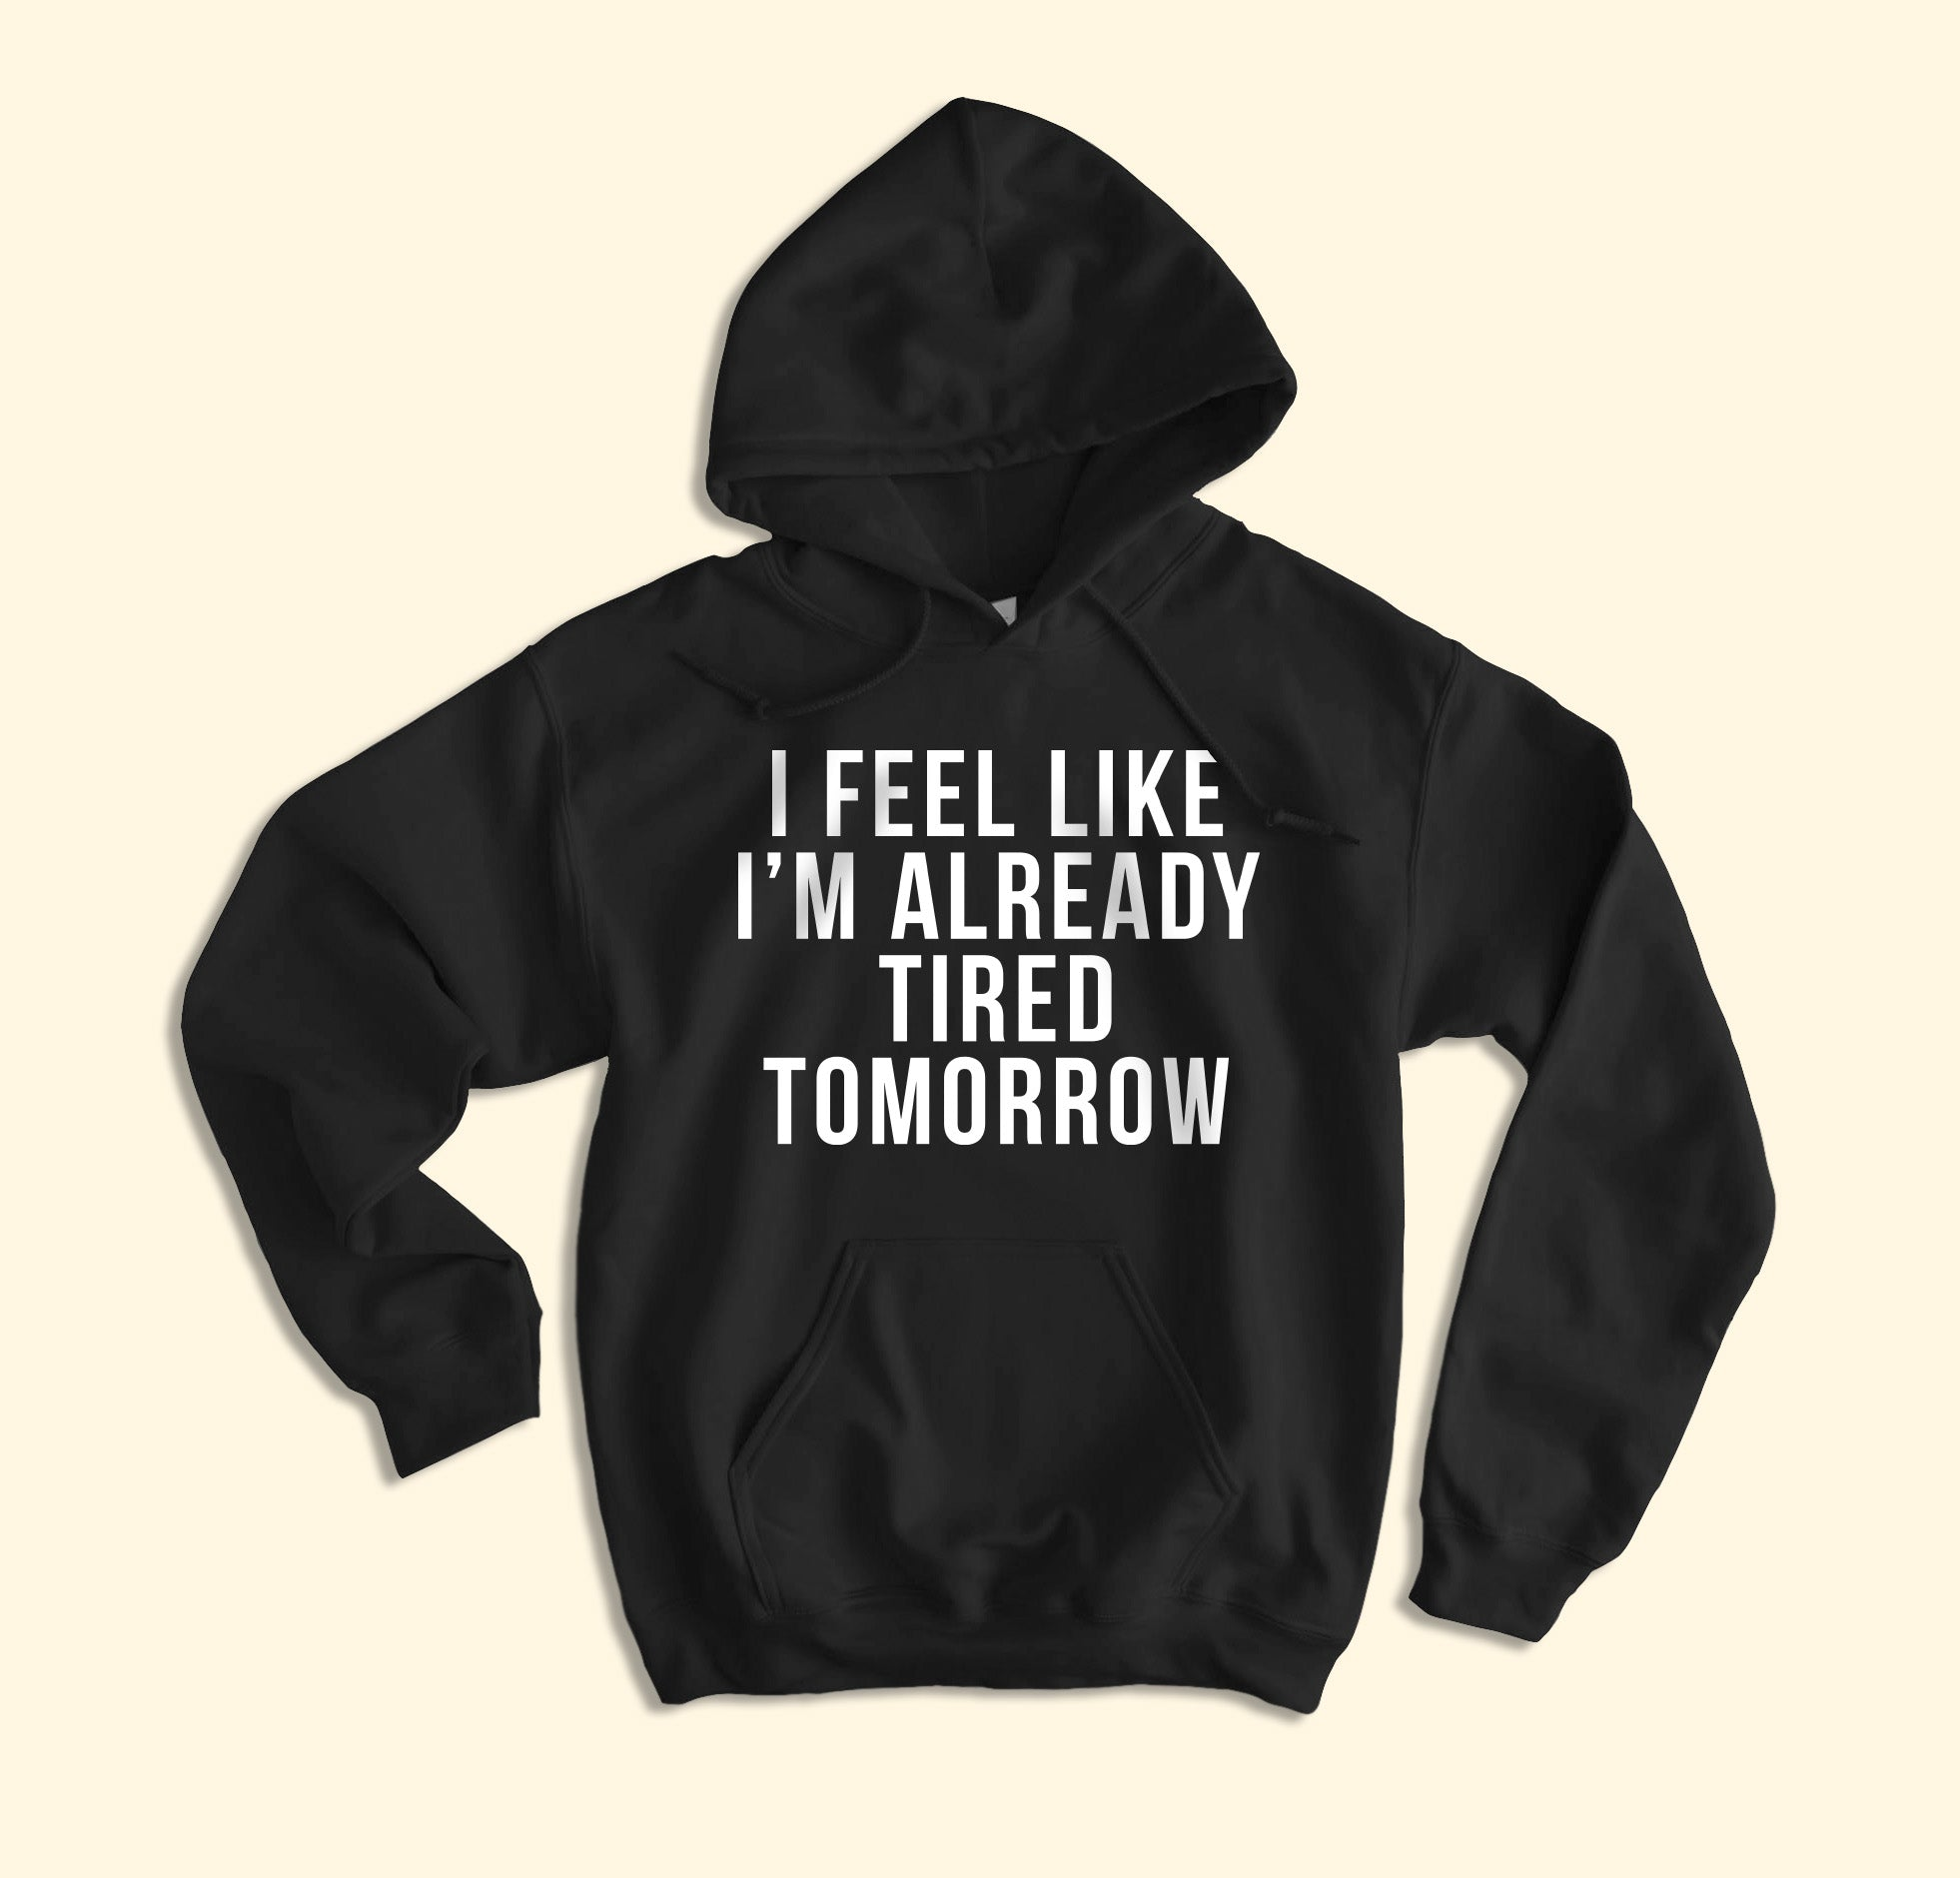 I Feel Like I'm Already Tired Hoodie